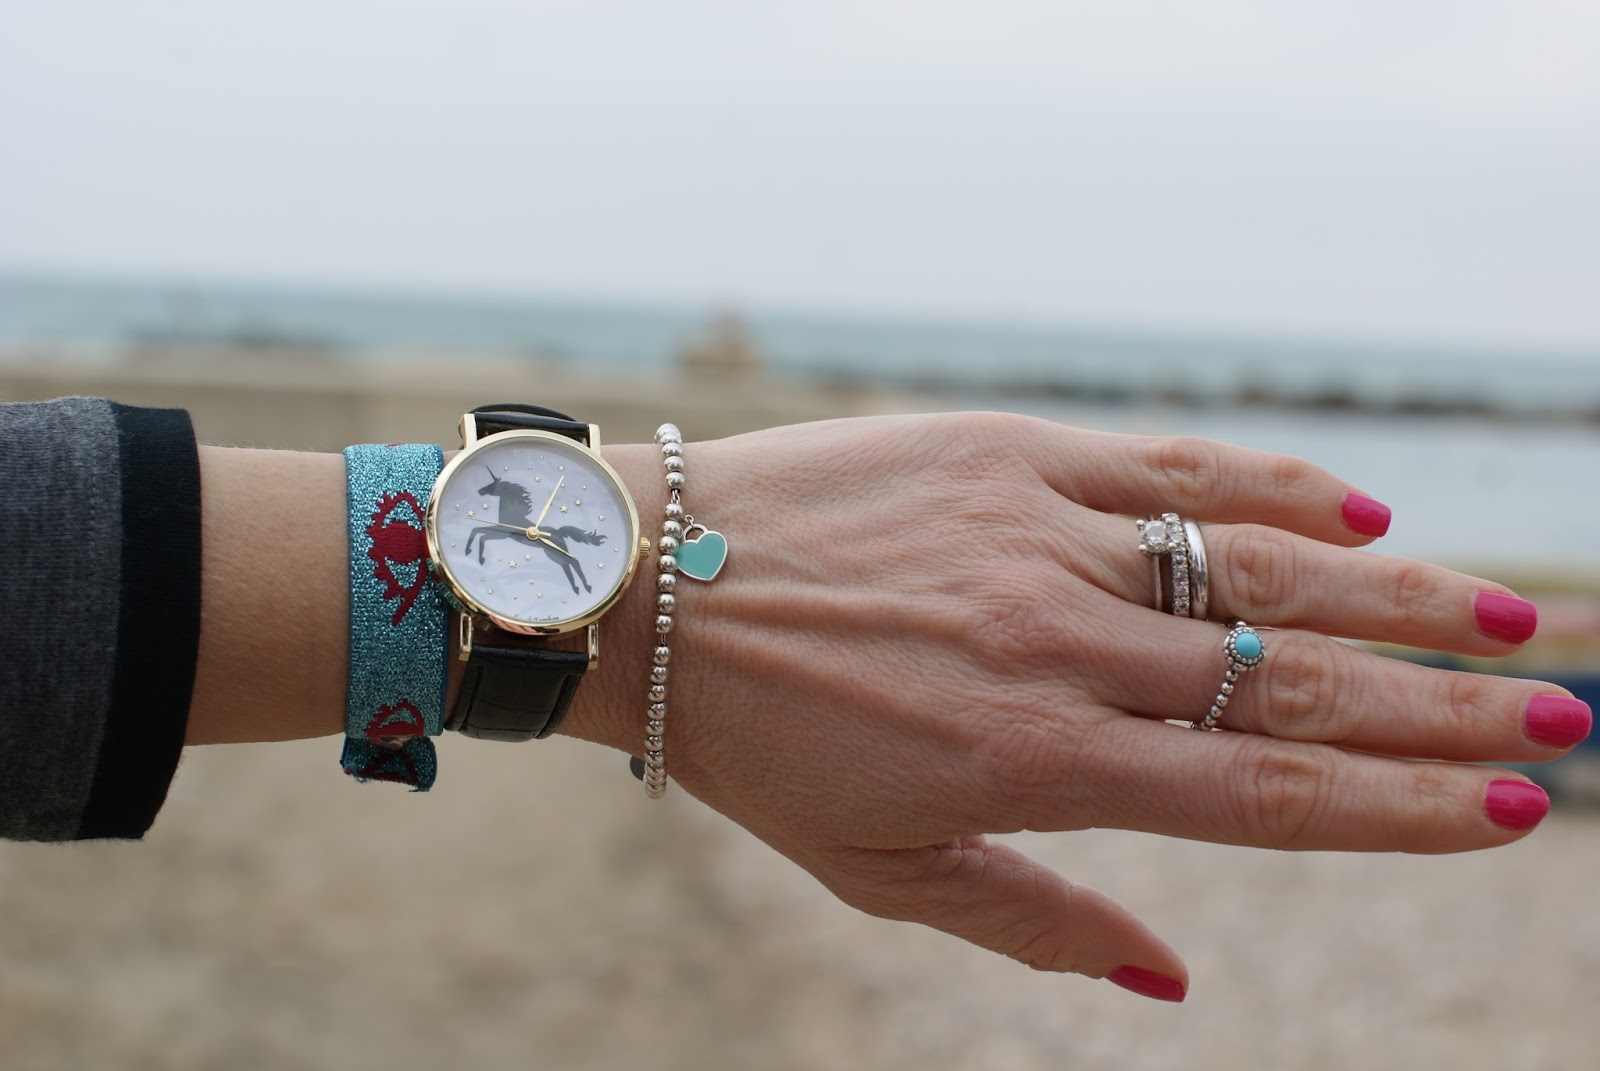 Woodstock Zambon watch on Fashion and Cookies fashion blog, fashion blogger style